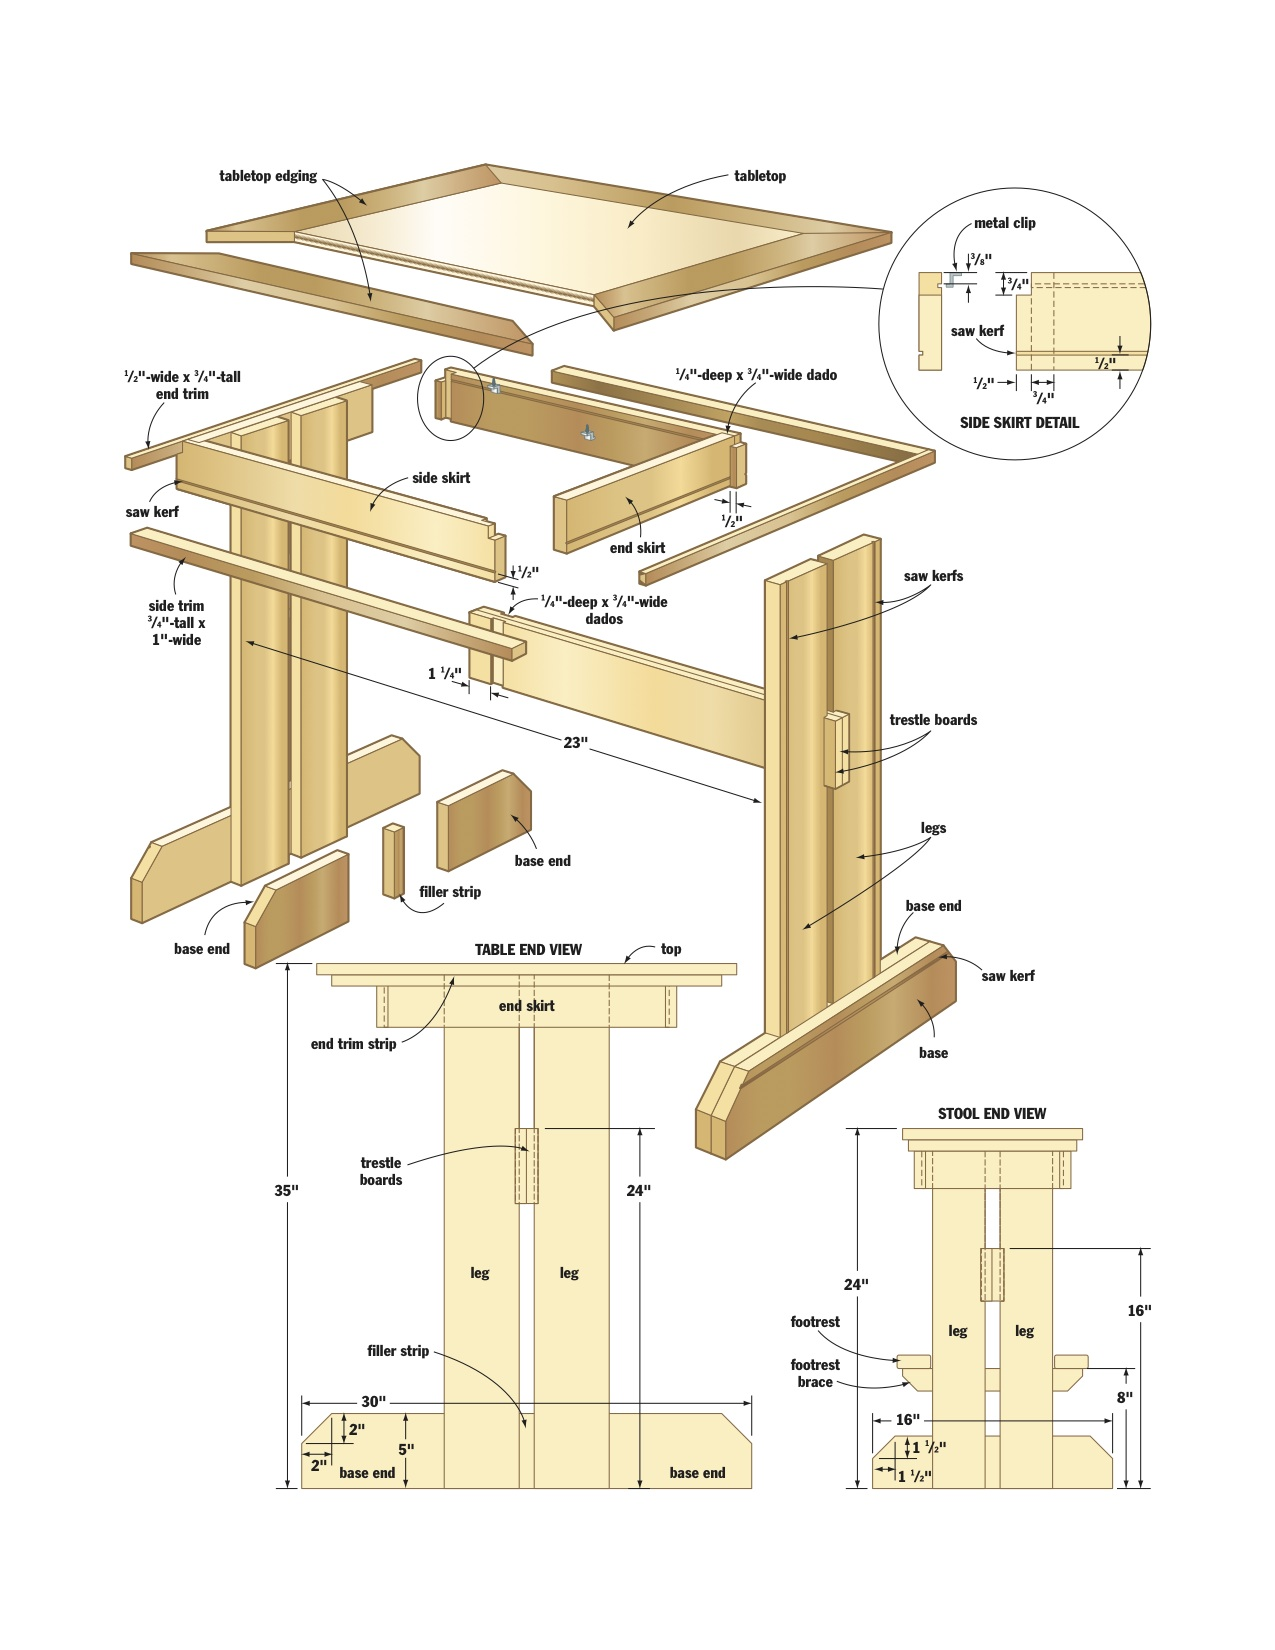 Pdf diy woodworking plans breakfast nook download woodworking plans bed frame woodproject - Kitchen bench designs ...